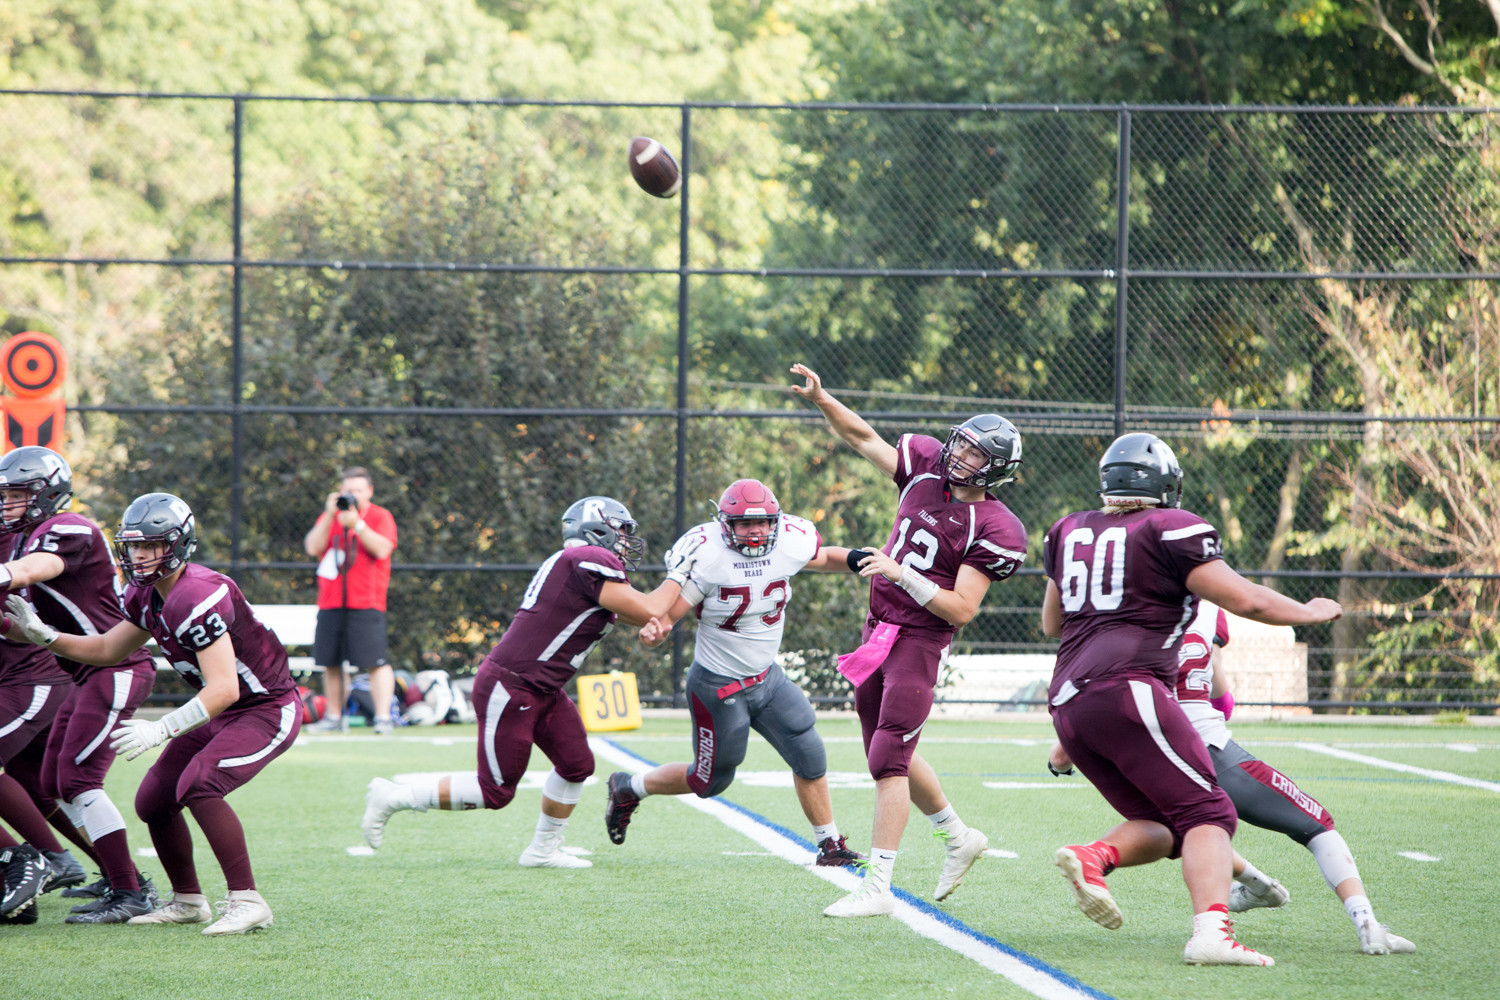 Riverdale quarterback Ryan Rosenzweig led the Falcons to an explosive offensive day versus Morristown Beard last Saturday. Unfortunately for the Falcons, the Crimson offense was just a little better in a one-point loss for Riverdale.